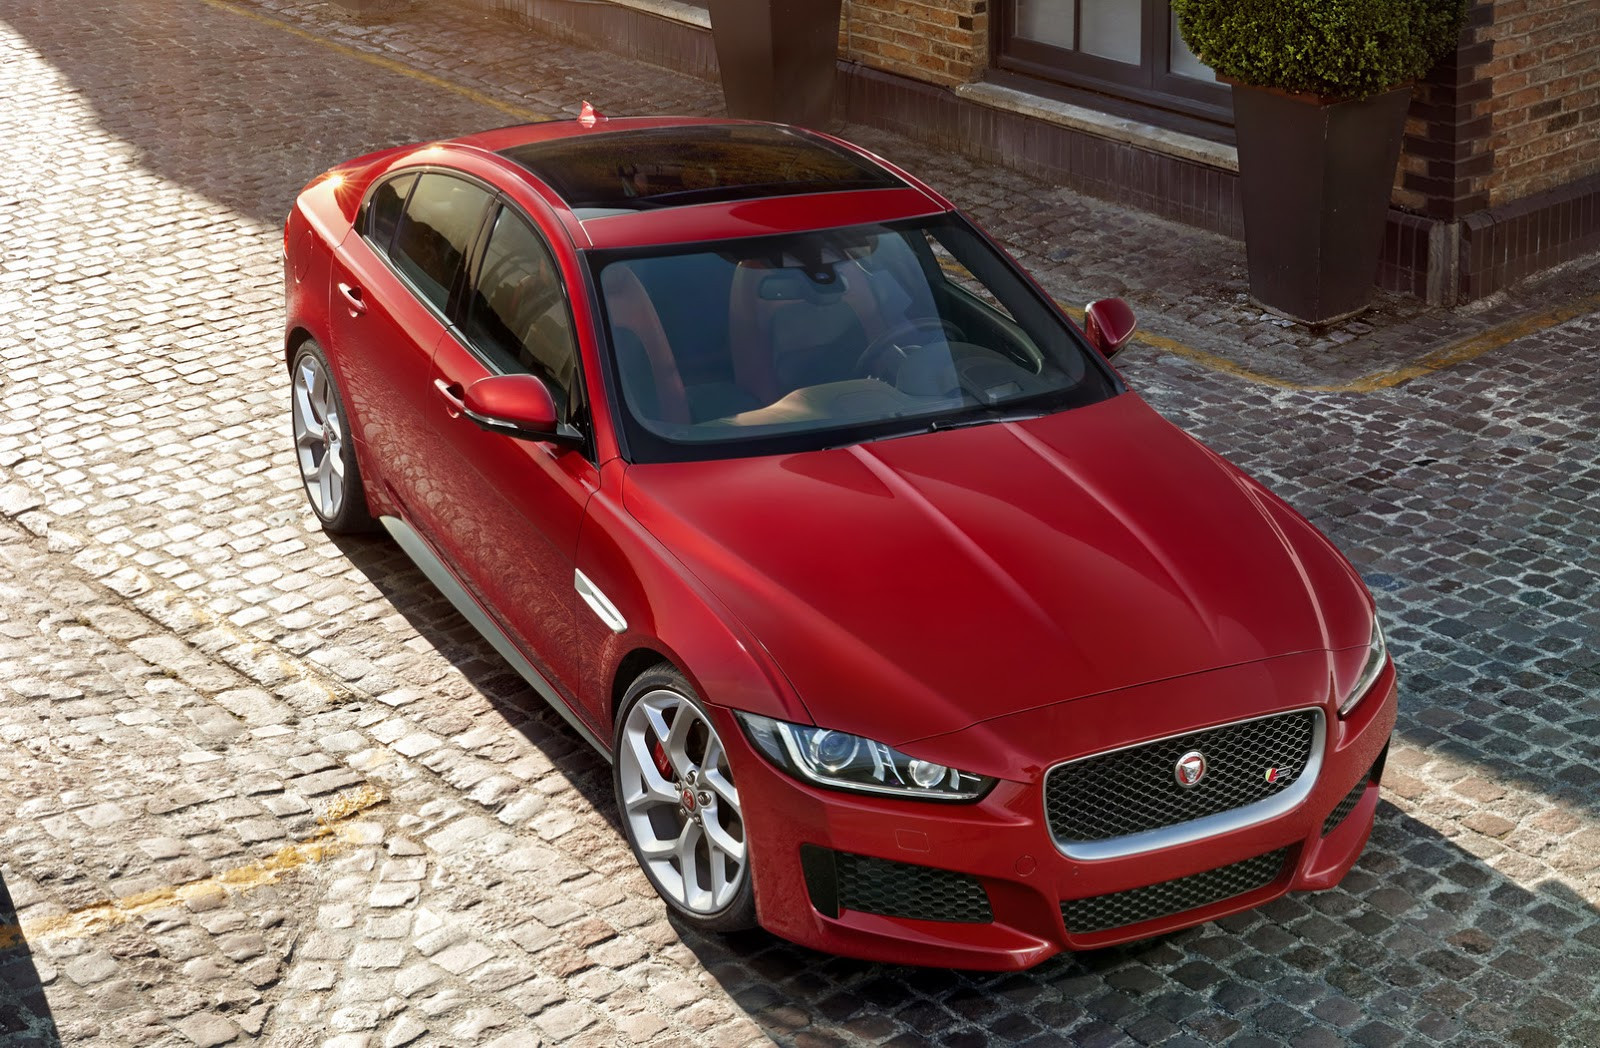 New-2016-Jaguar-XE-officially-revealed-Images-and-details-44